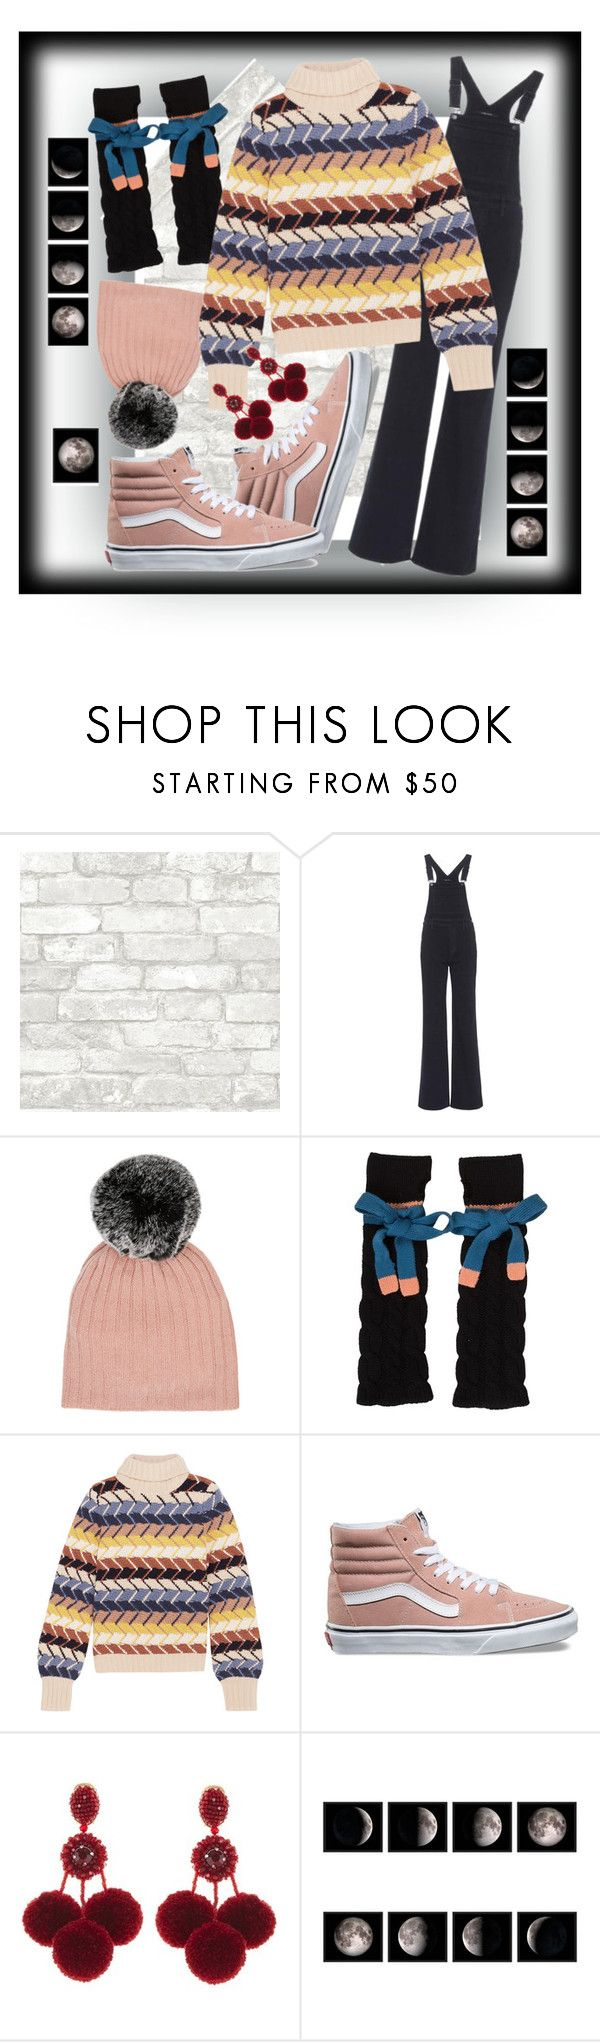 """#Trending: Cold Weather Wear"" by cigoehring ❤ liked on Polyvore featuring J Brand, Belle Enfant, Cacharel, Chloé, Vans and Oscar de la Renta"